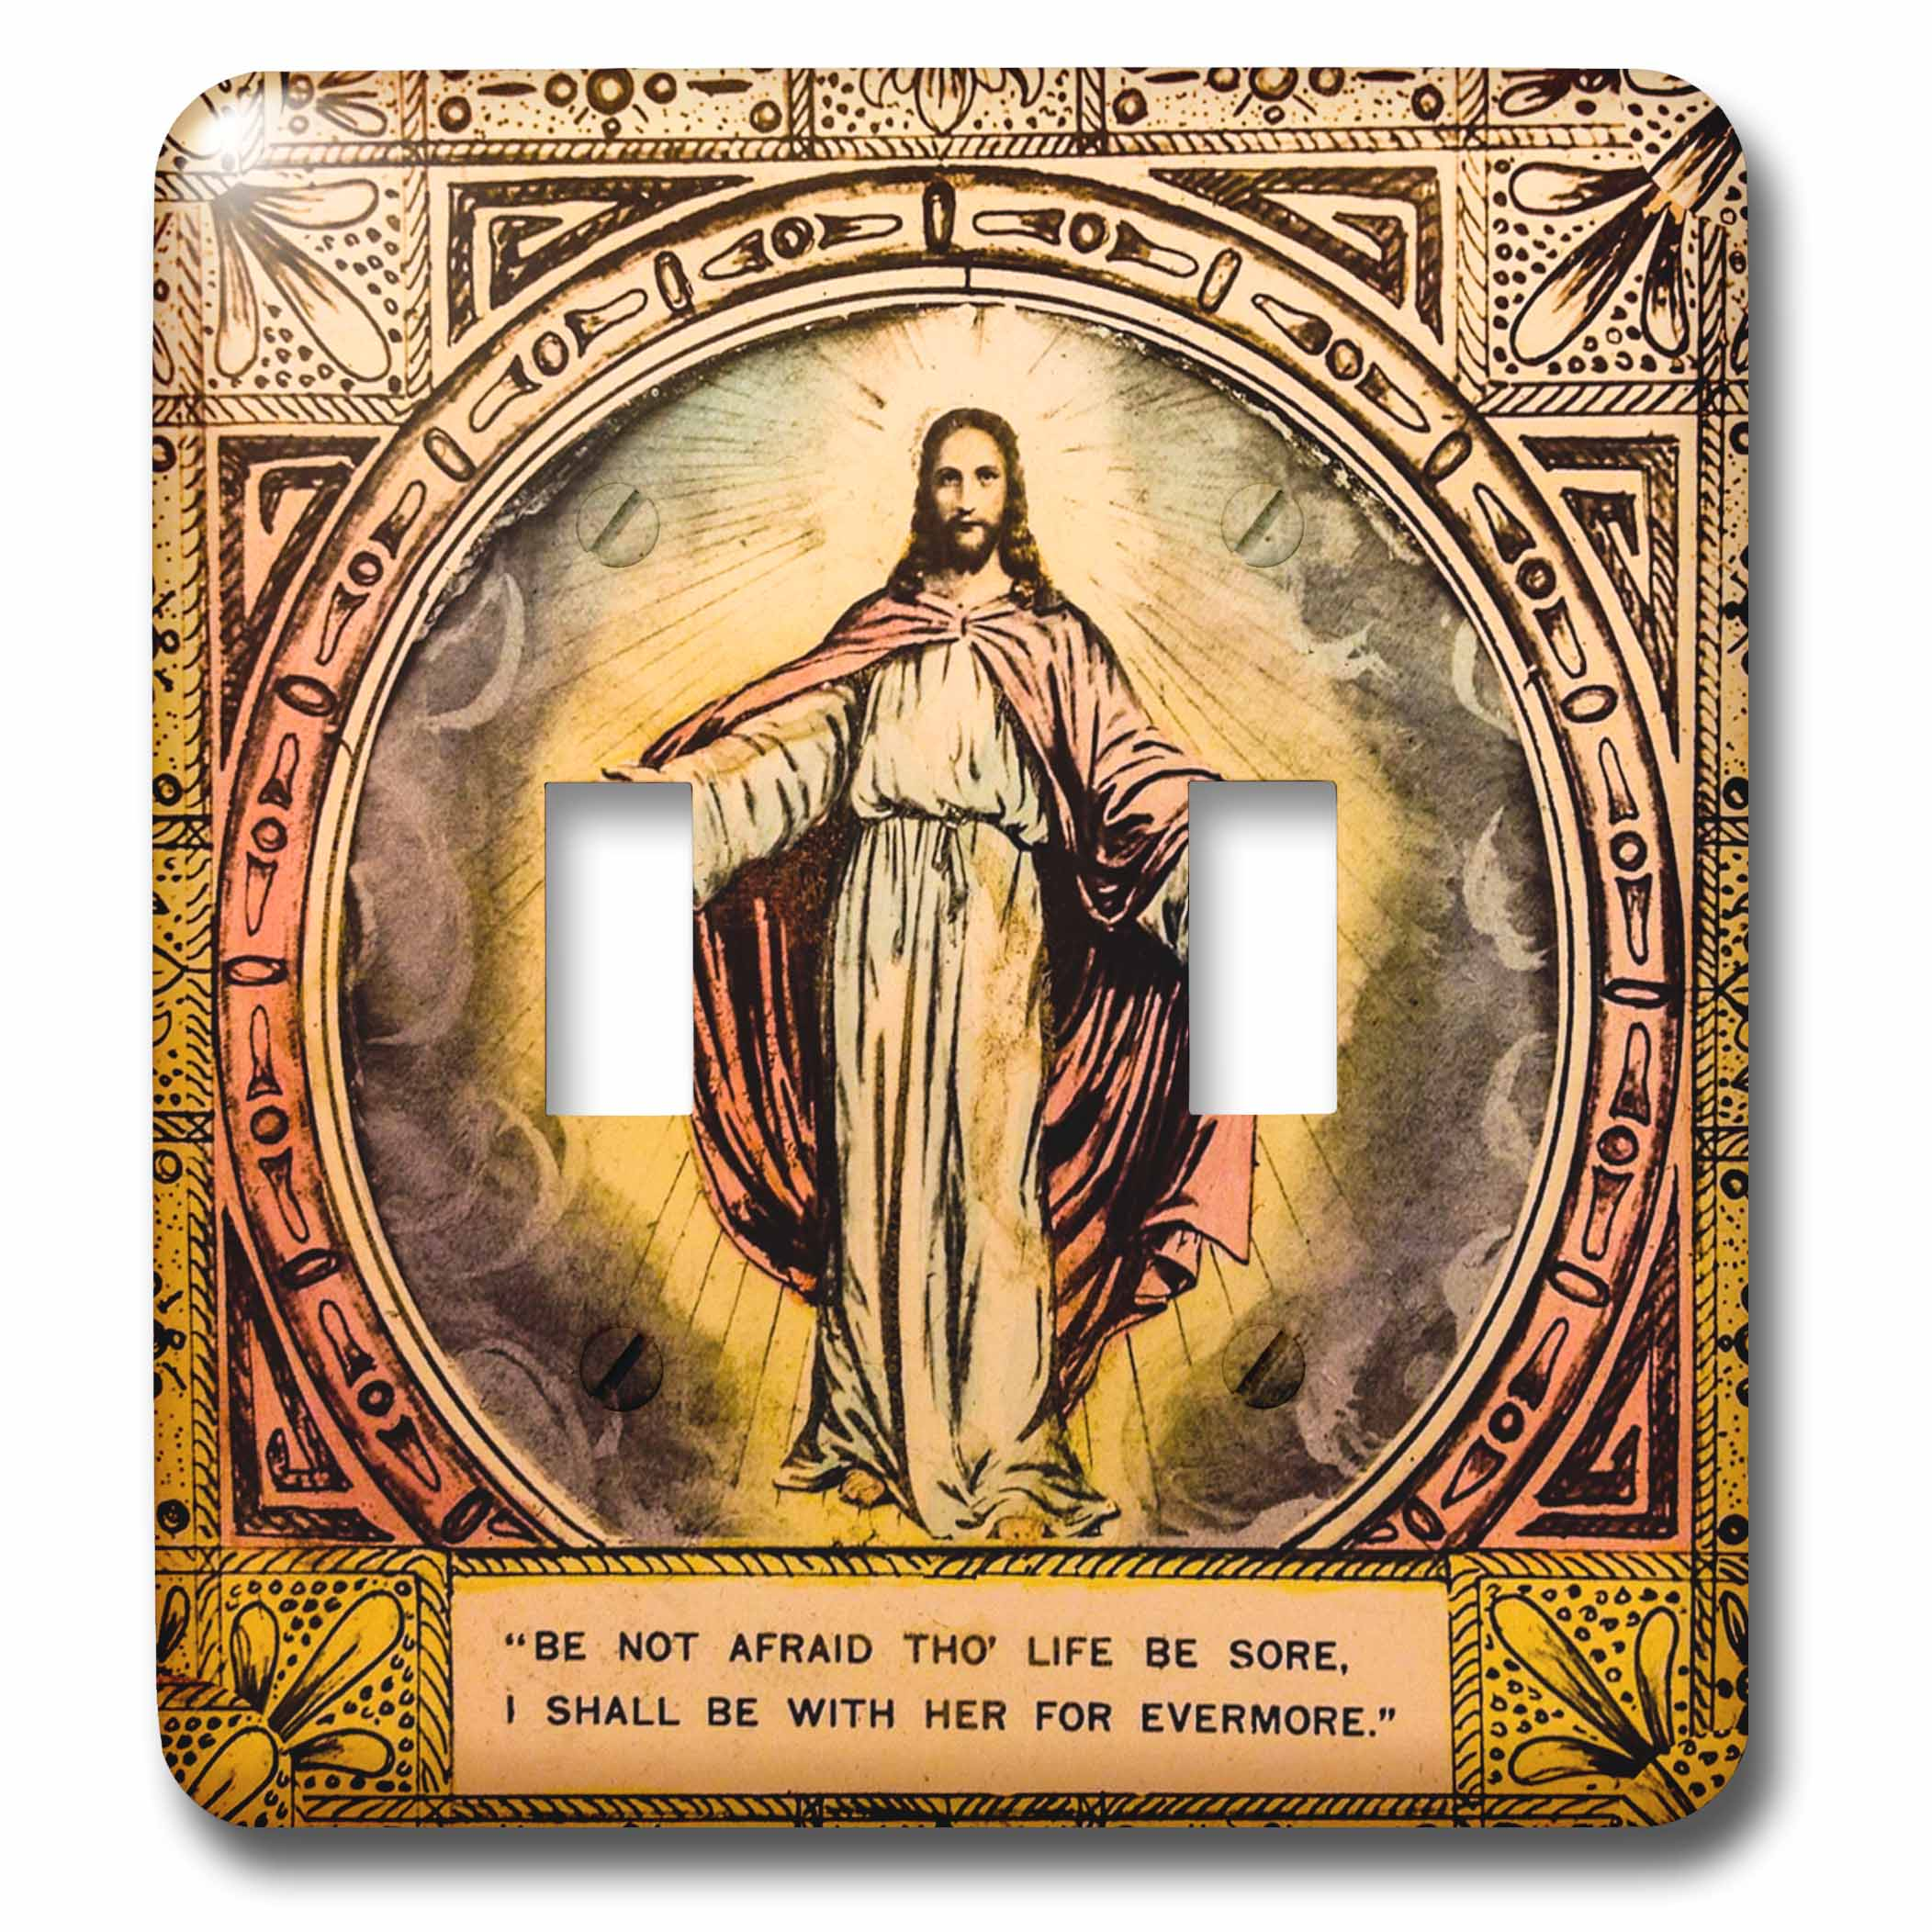 3drose Victorian Magic Lantern Show Series The Gift Jesus Christ